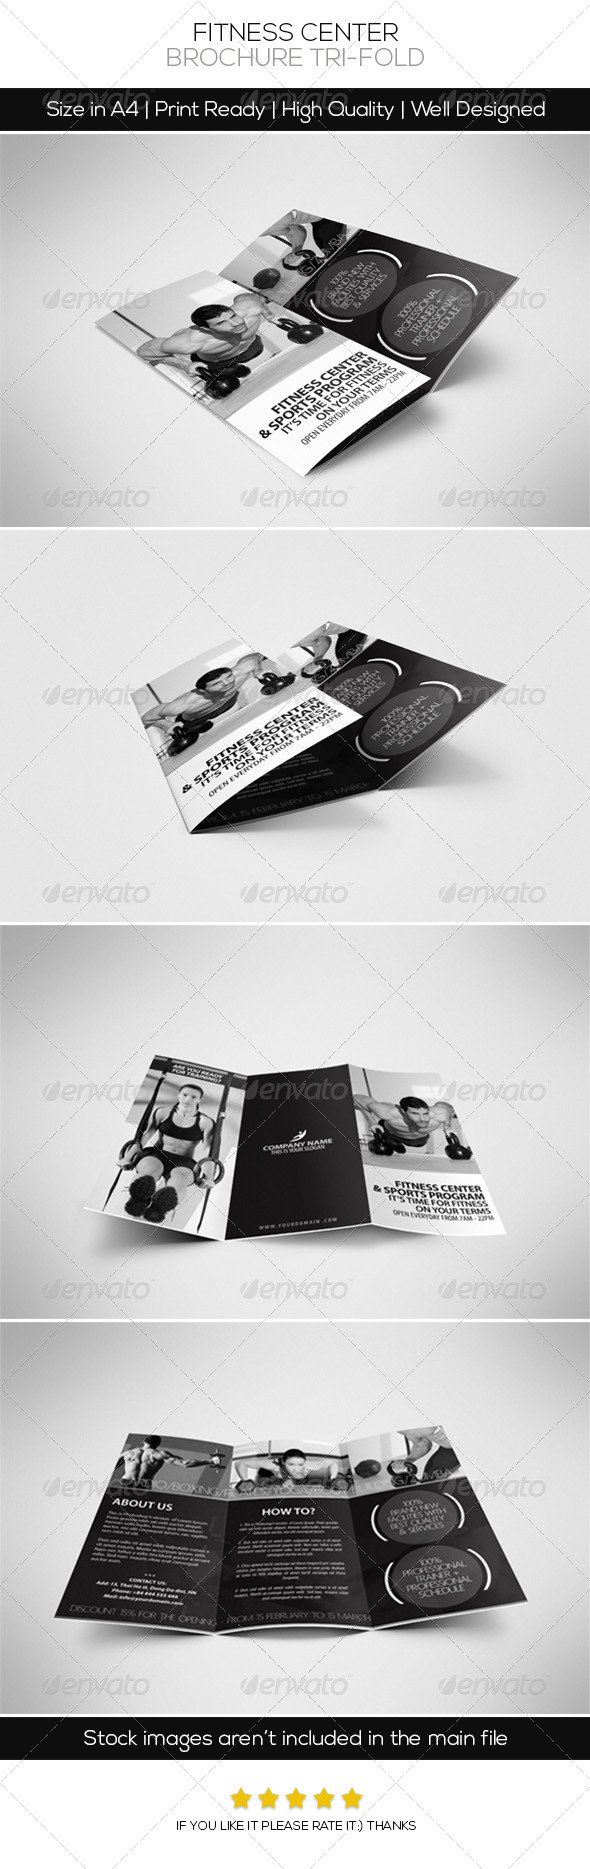 Fitness Center Brochure Tri-fold - Brochures Print Templates